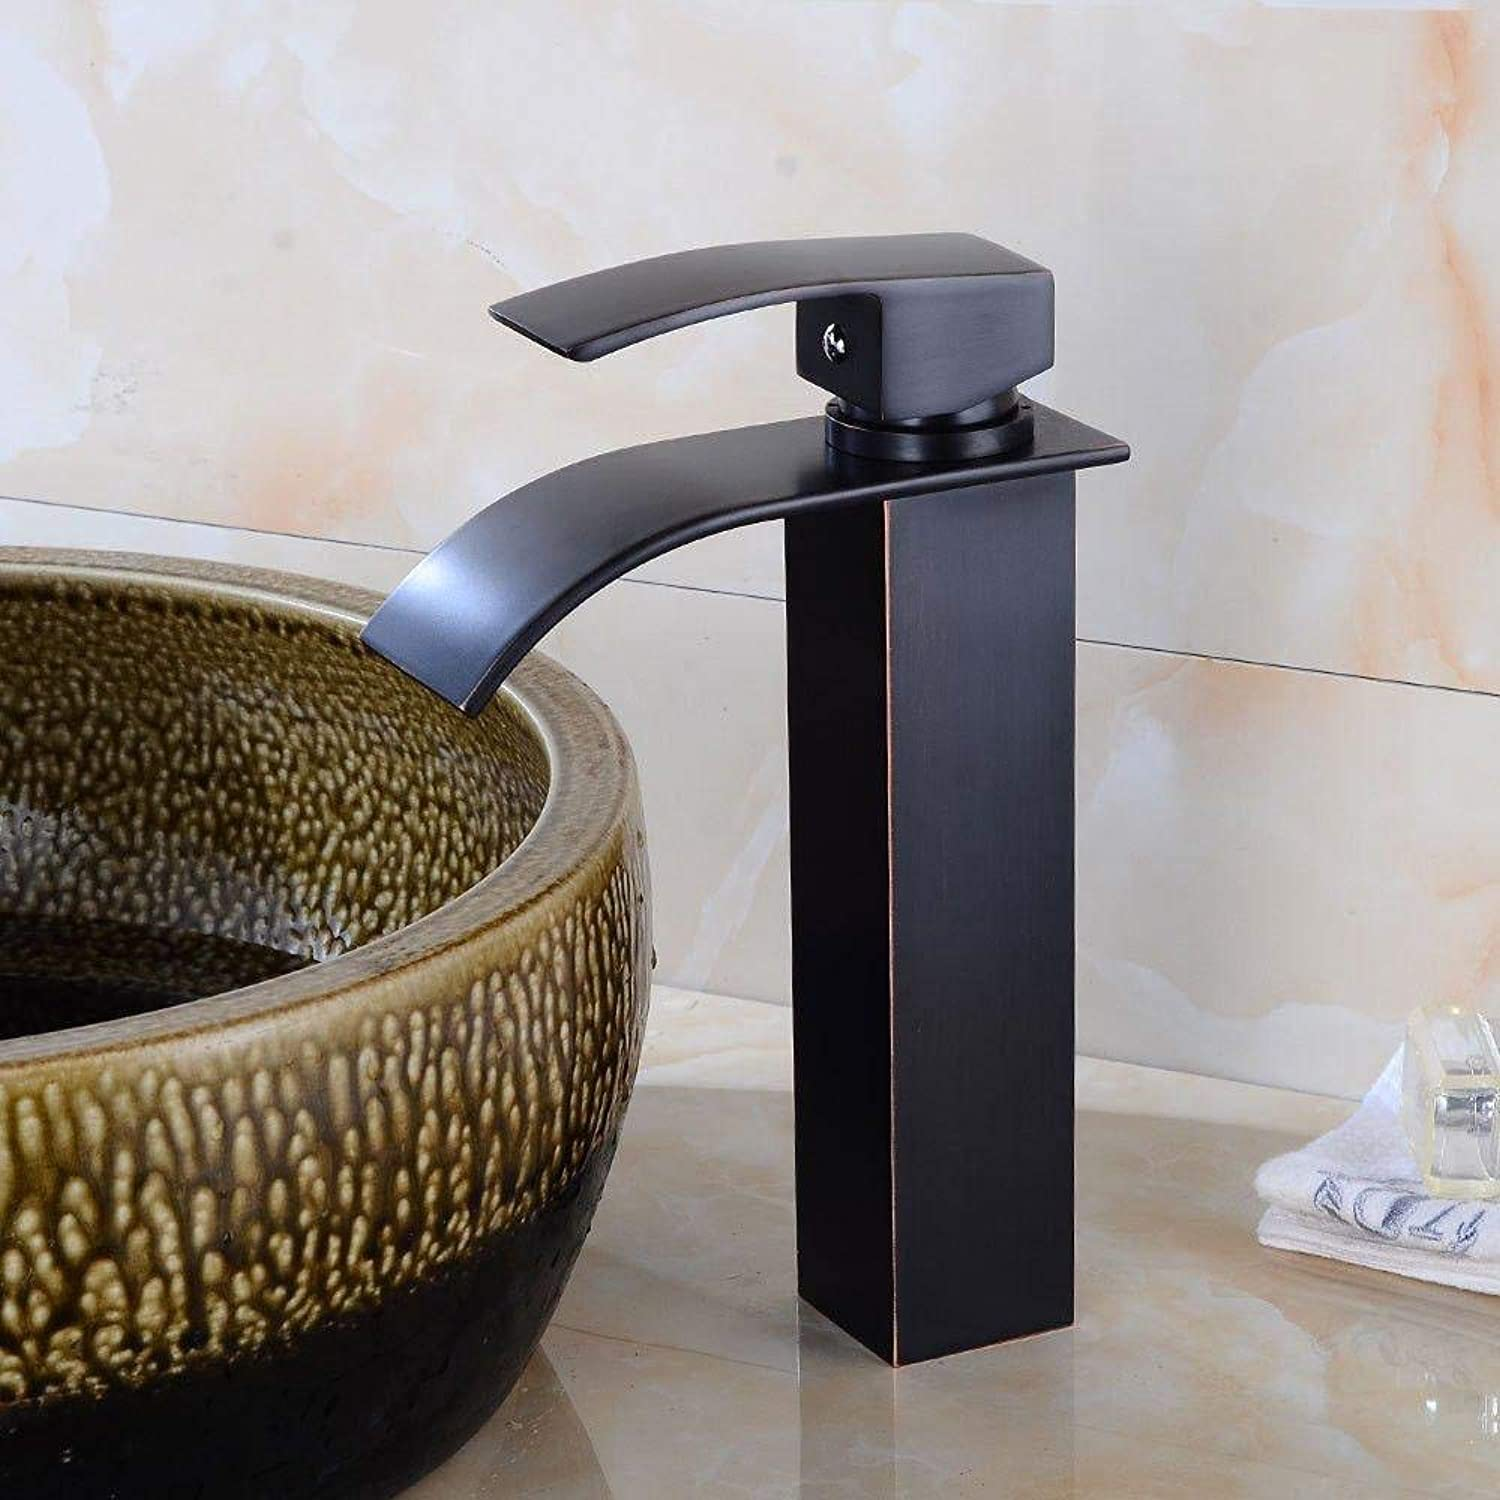 Honcx Faucet Taps Basin Waterfall Faucet Bathroom Hot and Cold Above Counter Basin Faucet Black Ancient Retro Single Hole Single Handle